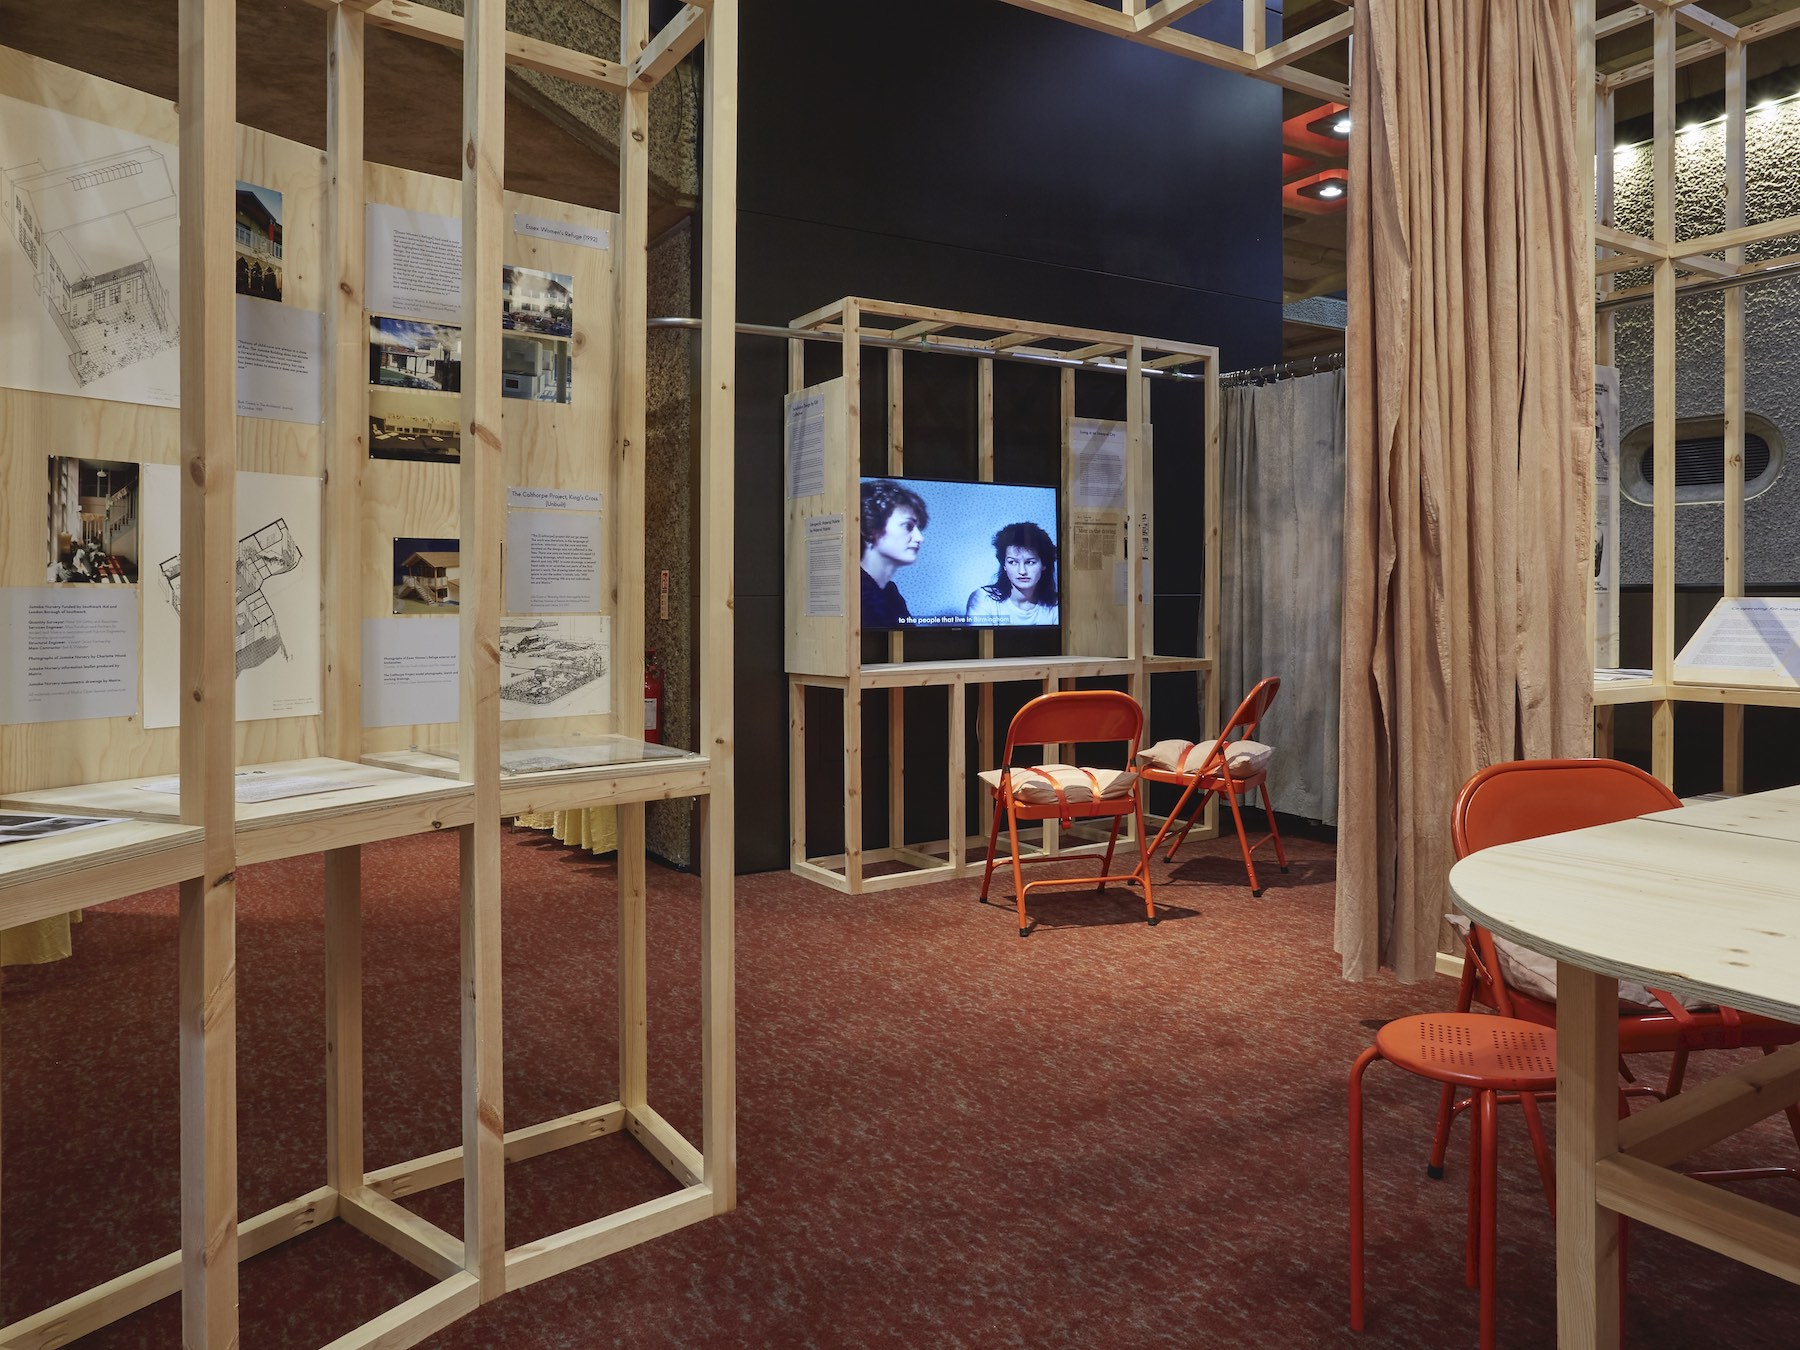 An installation view of Heather Powell, Paradise Circus, produced with Birmingham Film and Video Workshop, at the Barbican exhibition by Matrix, 'How We Live Now'. Photograph © Thomas Adank